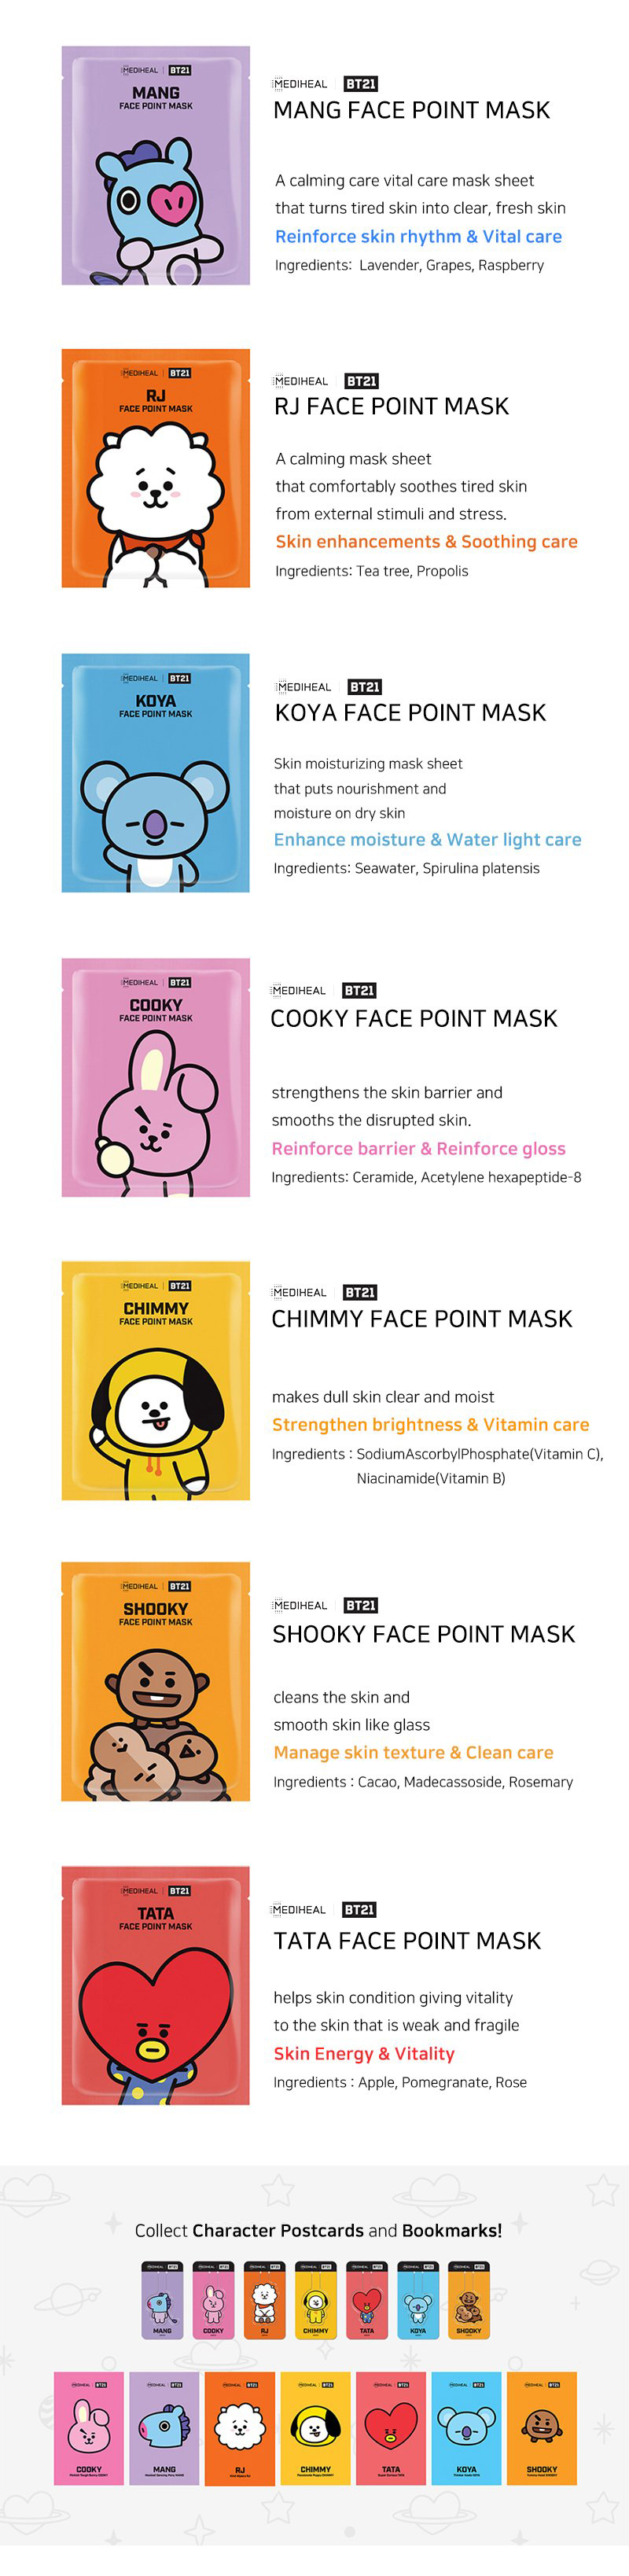 mediheal-bts-bt21-face-point-mask-set_1315d044-2e6c-4a80-ba01-30be45f9f6d9